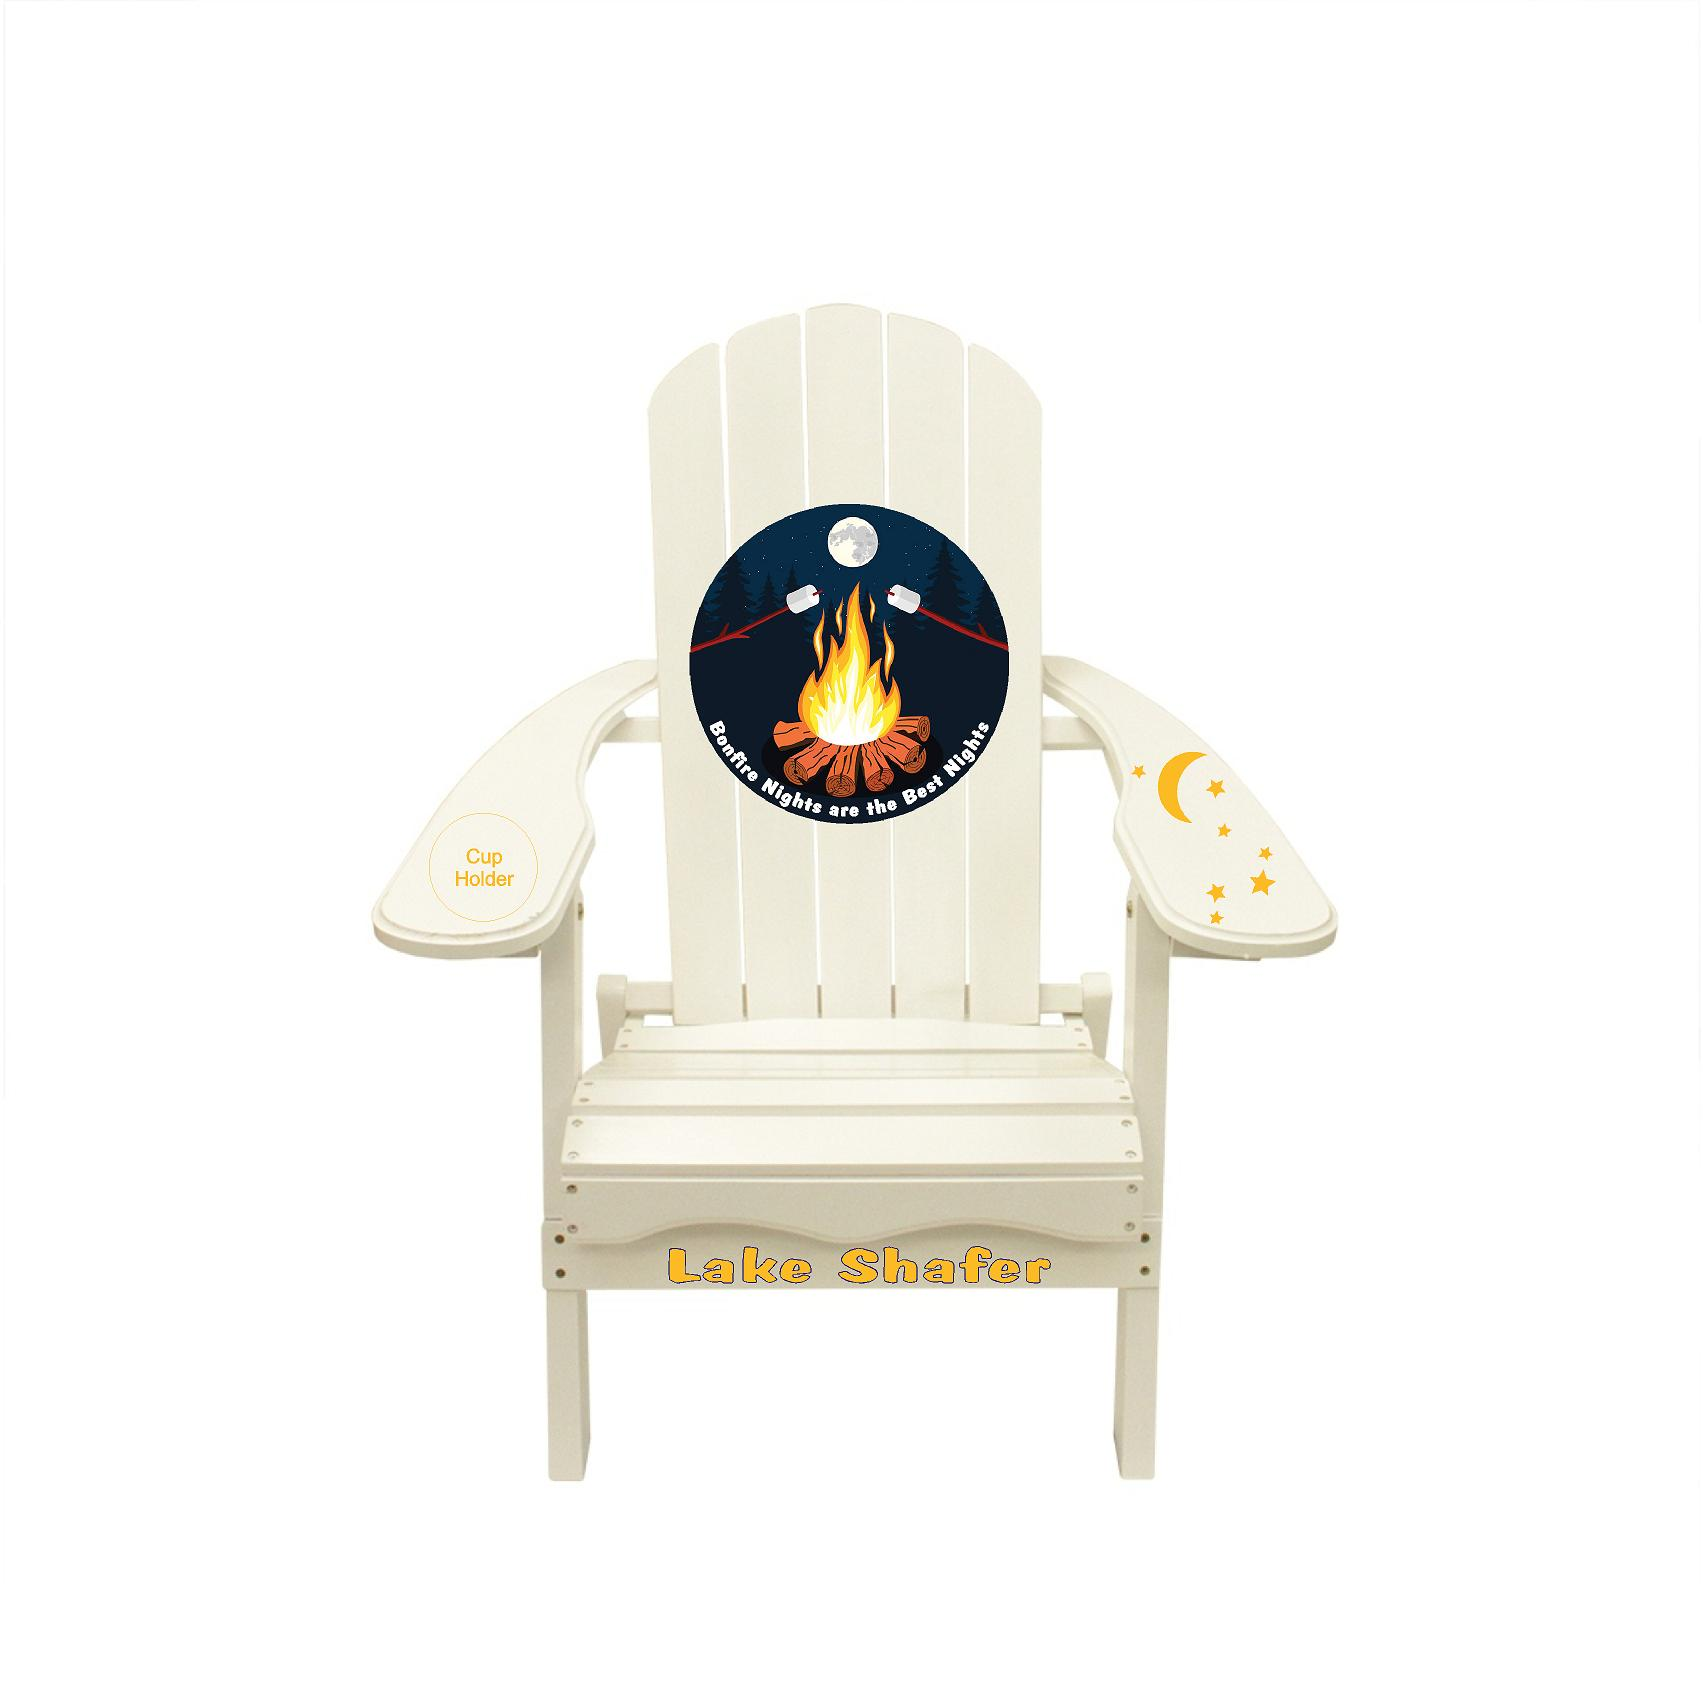 Bonfire Firepit Outdoor Night Graphic Decal Adirondack Lounge Chair